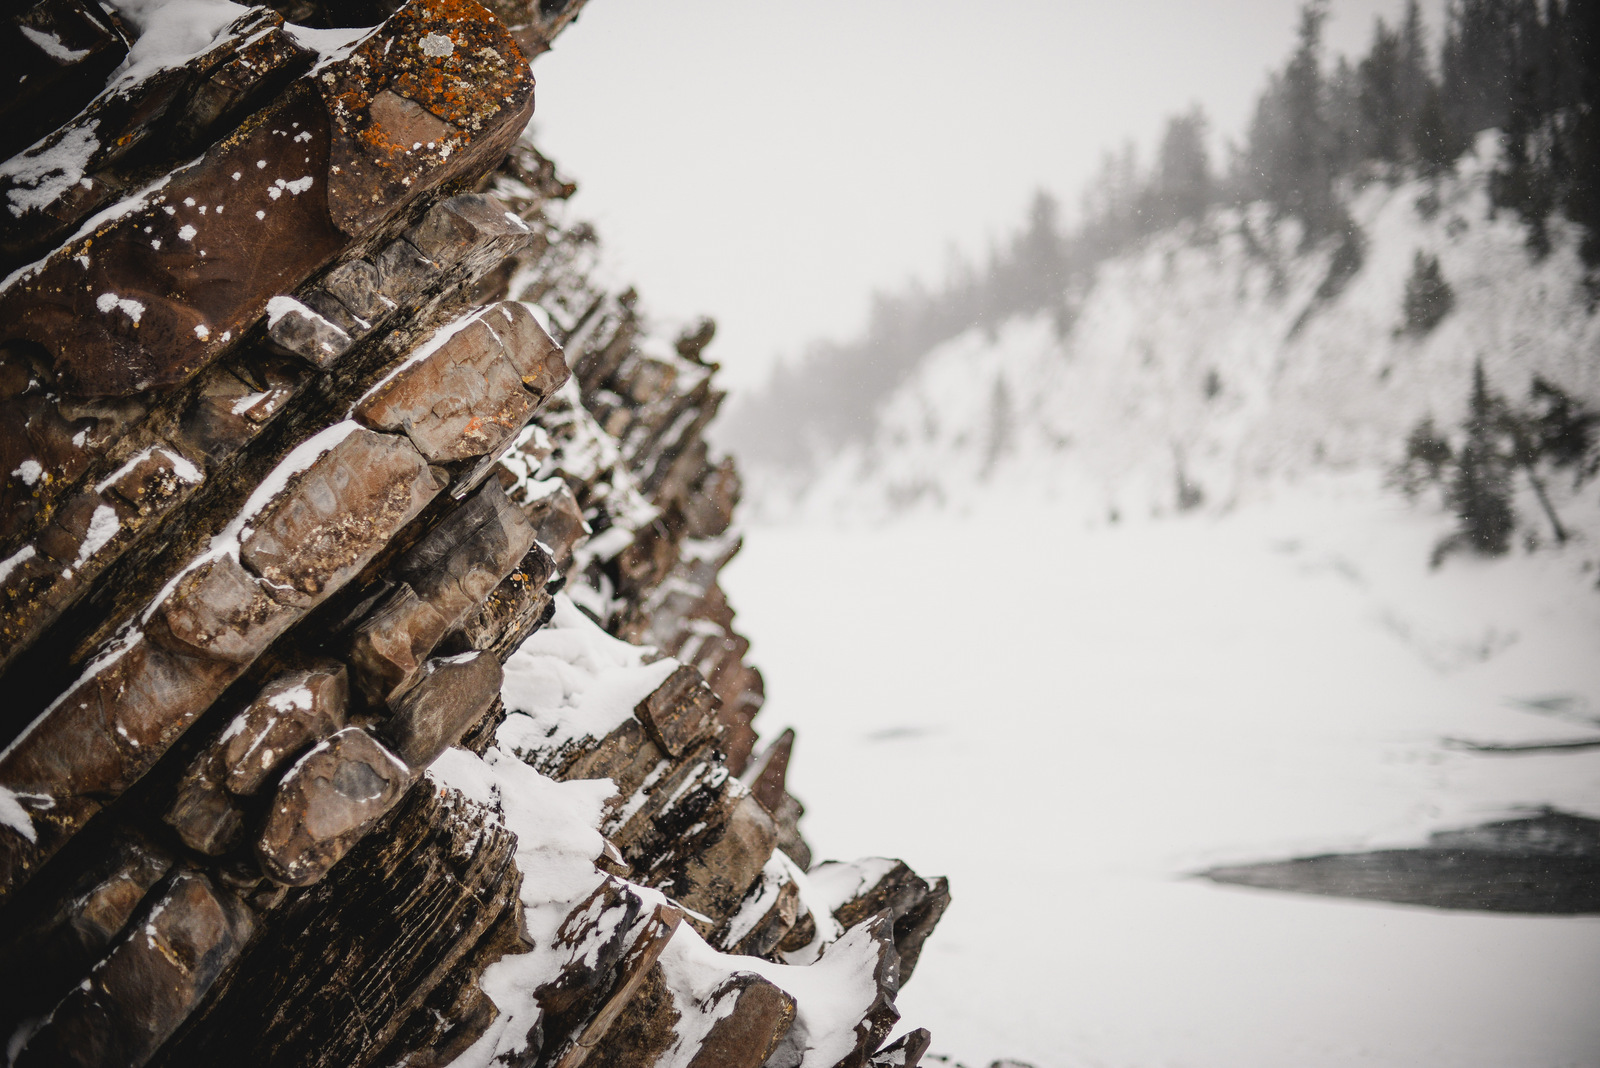 Bow Valley Falls in a snowstorm